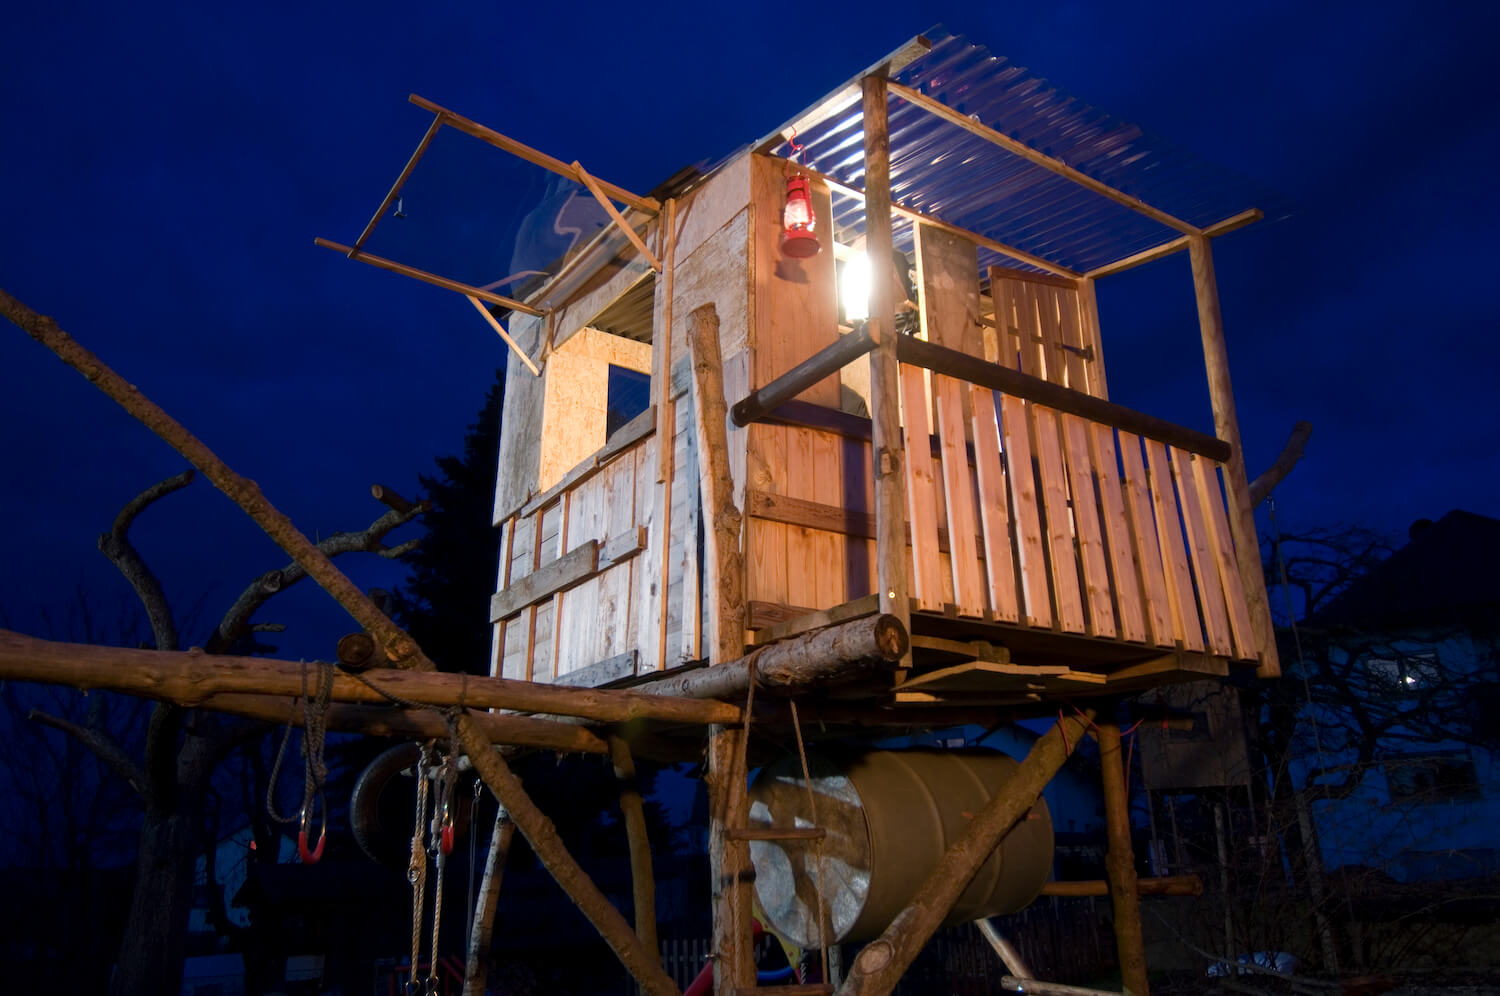 'Solar-powered' tree houses